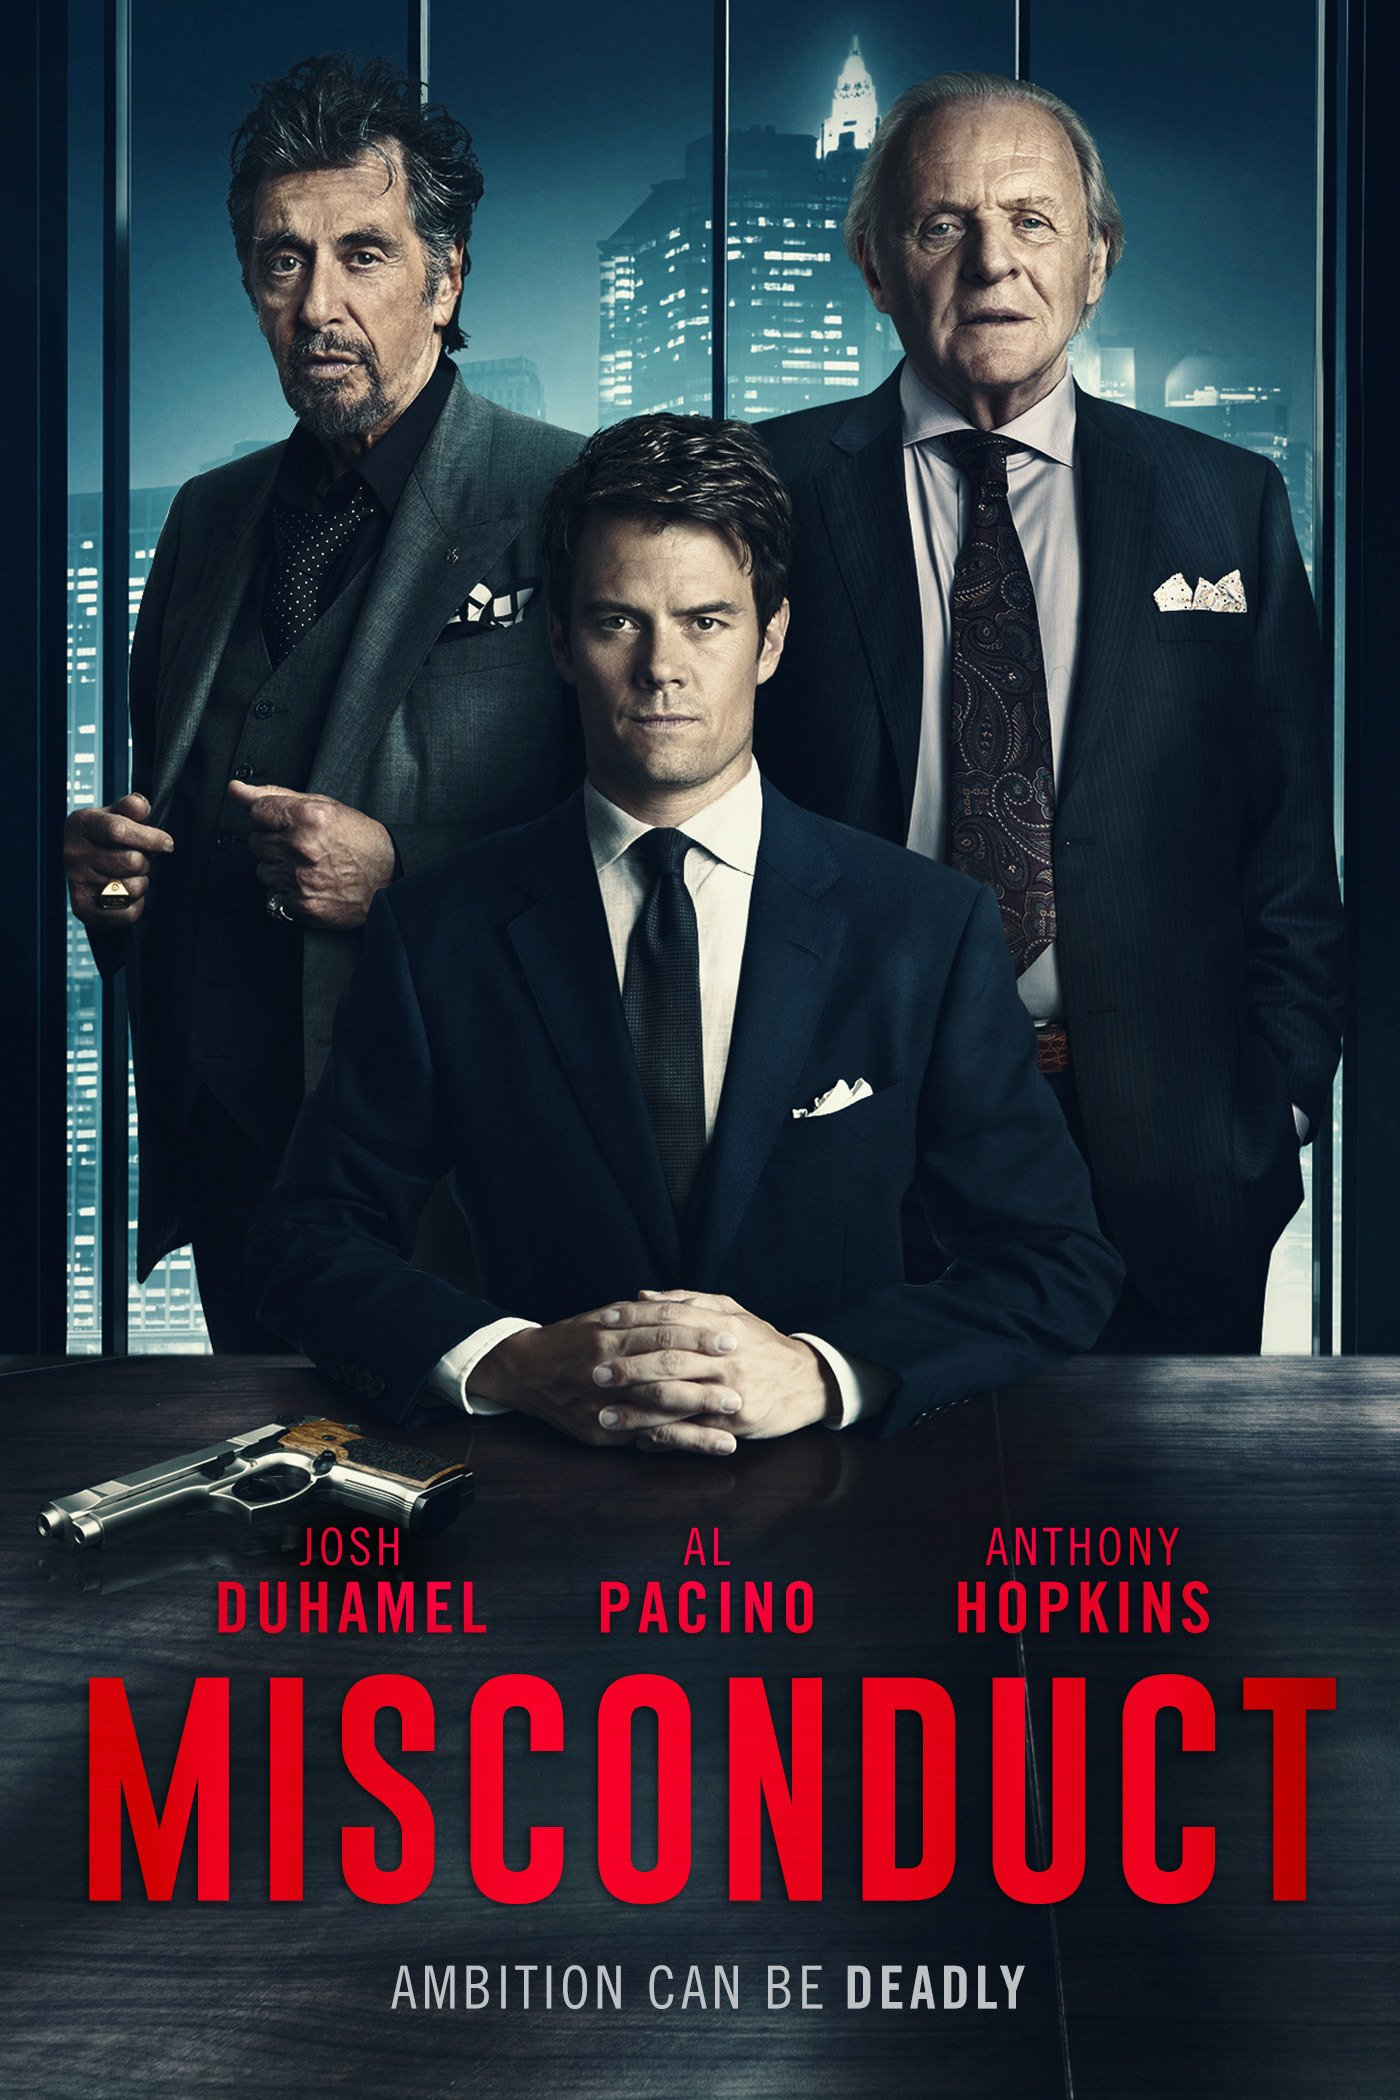 Watch Misconduct | Prime Video